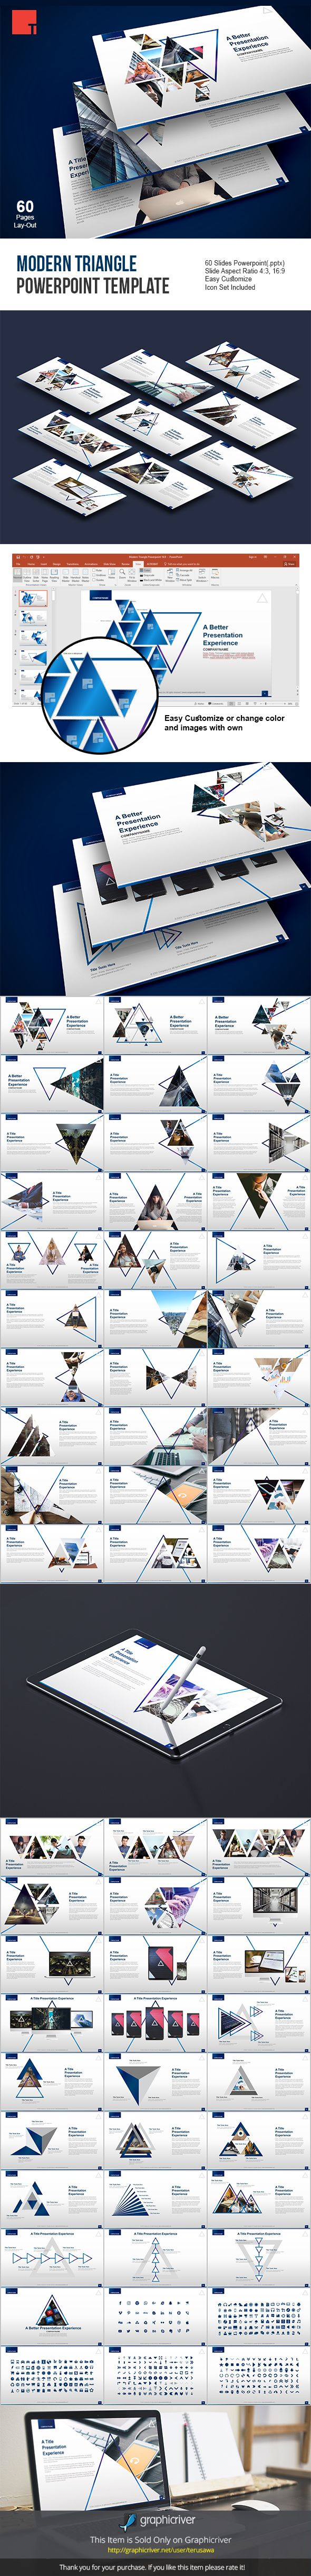 Modern triangle powerpoint template creative powerpoint templates modern triangle powerpoint template creative powerpoint templates presentation templates pinterest toneelgroepblik Image collections